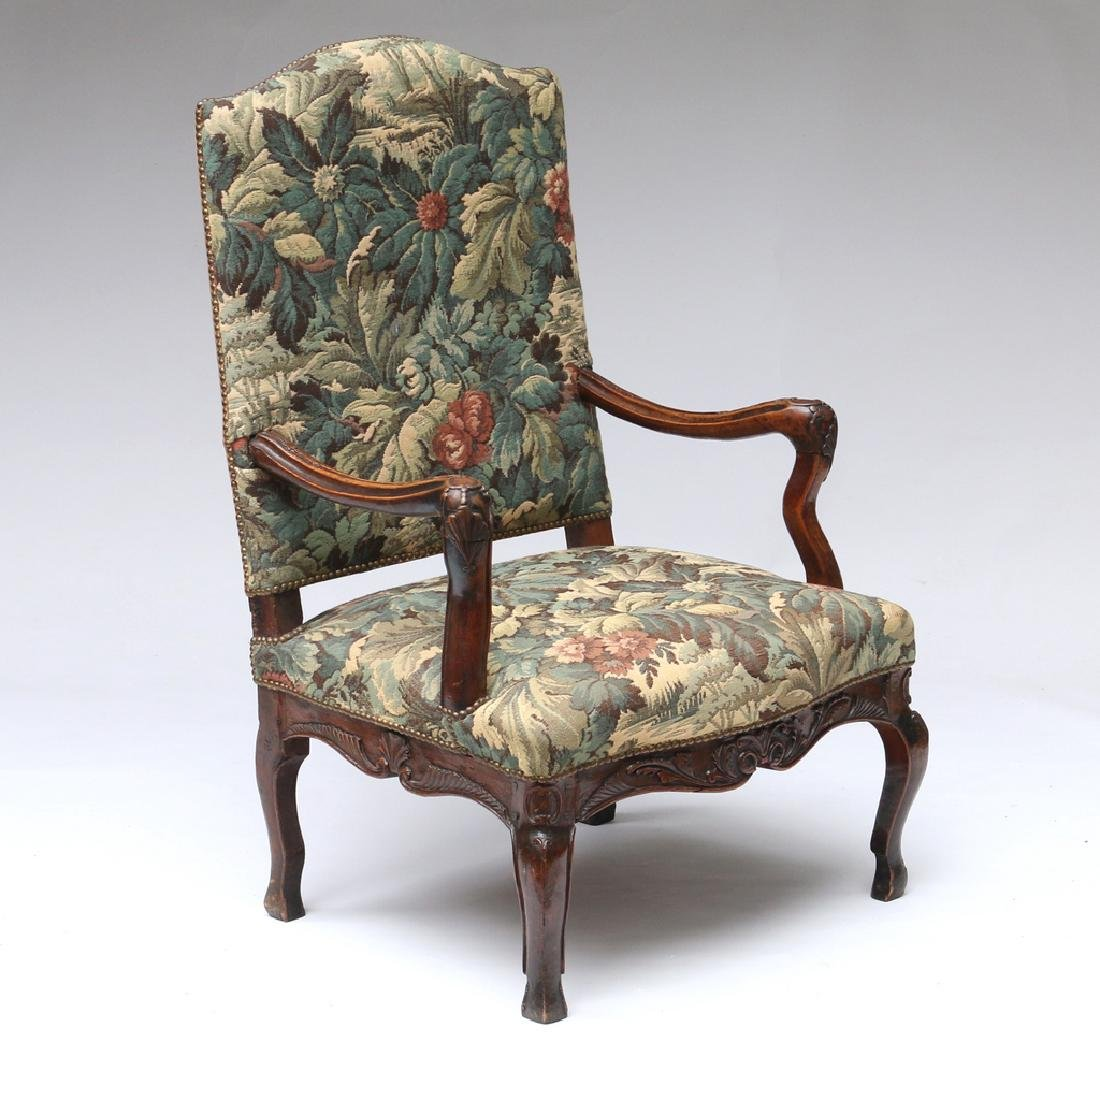 LOUIS XIII-STYLE CARVED WALNUT FAUTEUIL